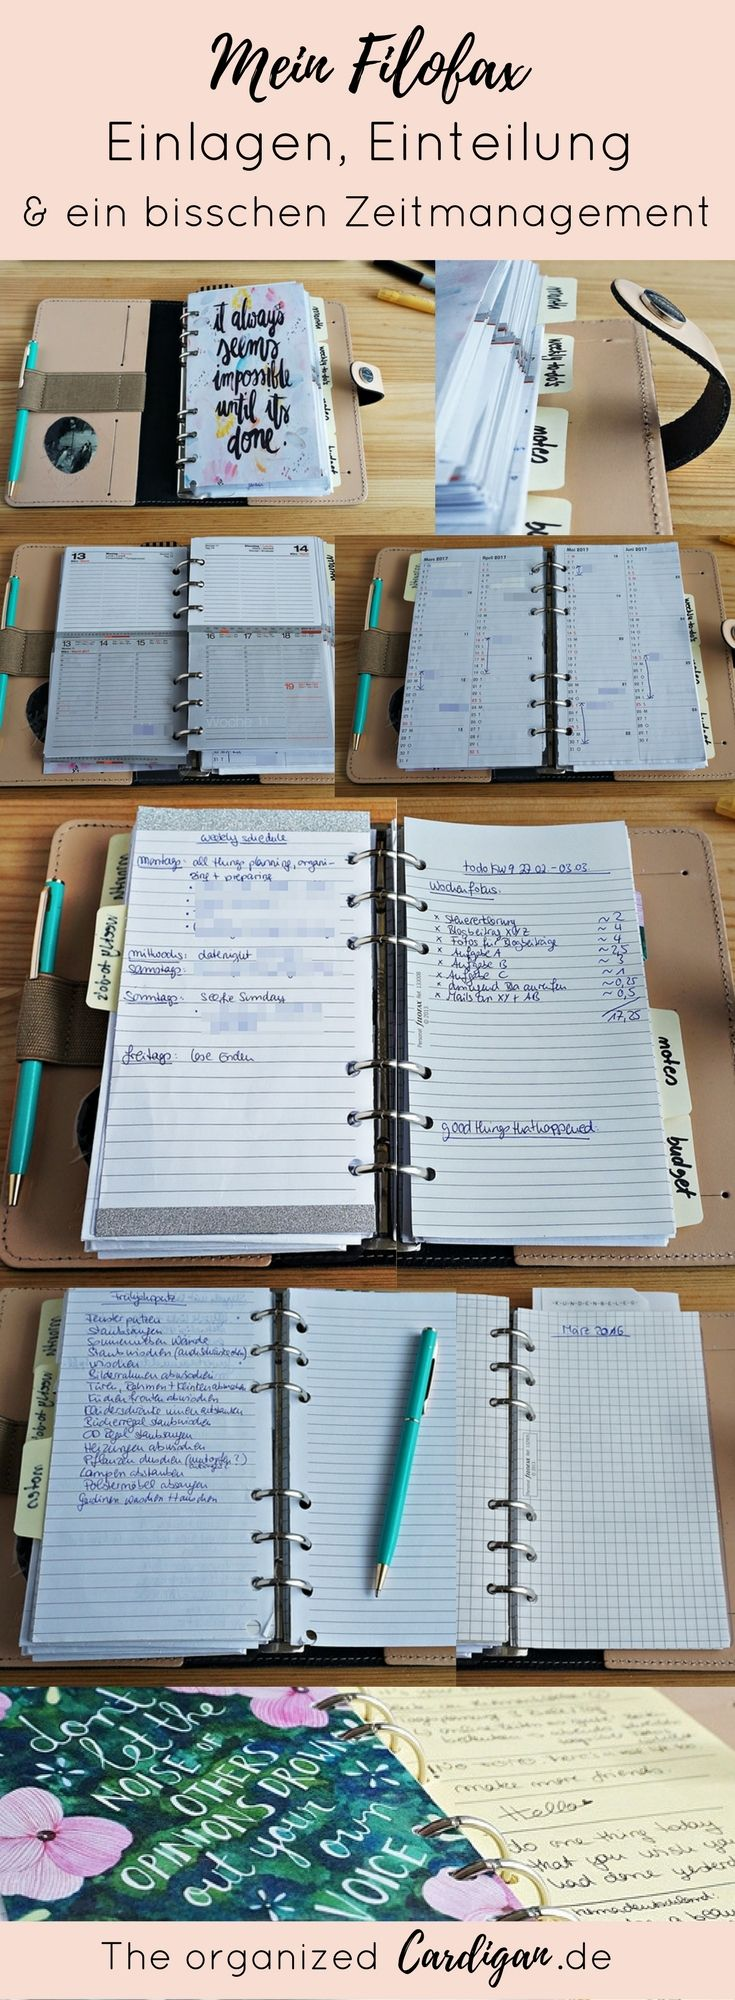 My Filofax – Deposits, Classification & a bit of Time Management